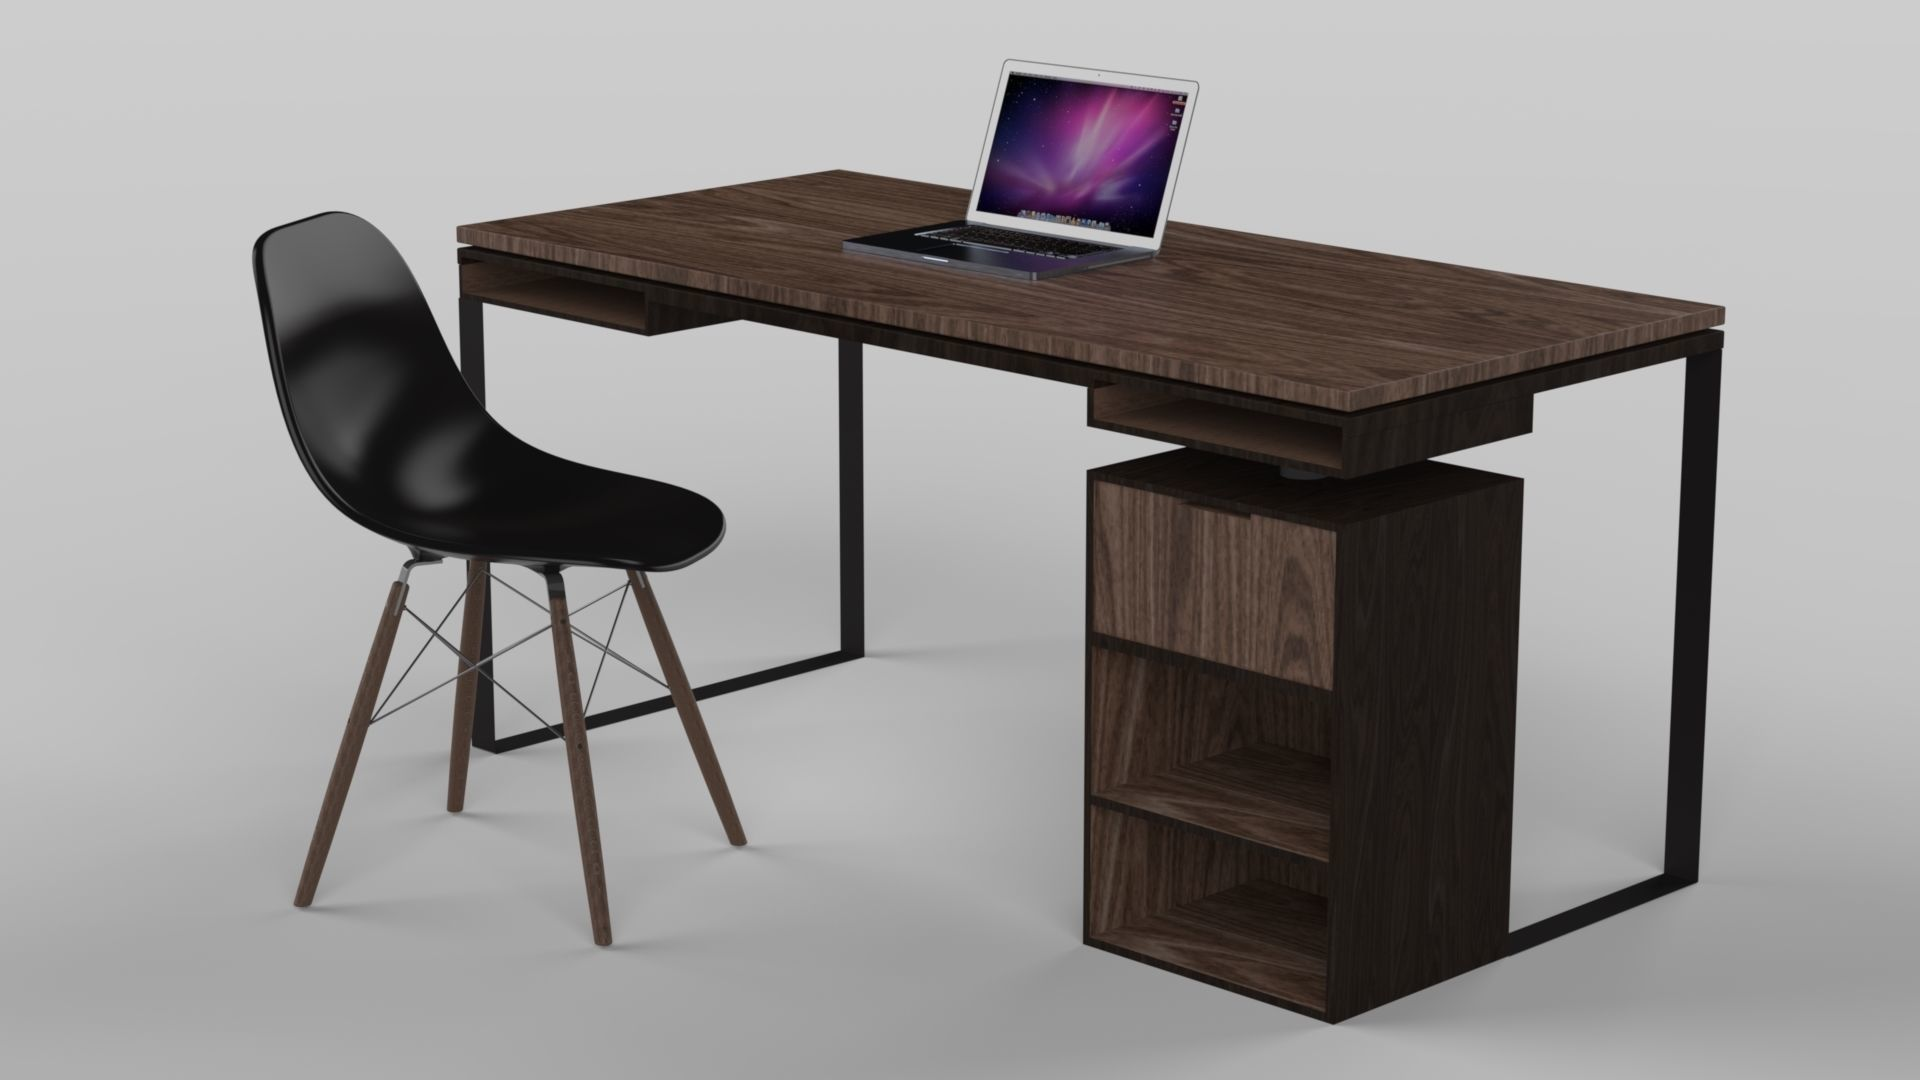 Modern Desk made of wood and metal